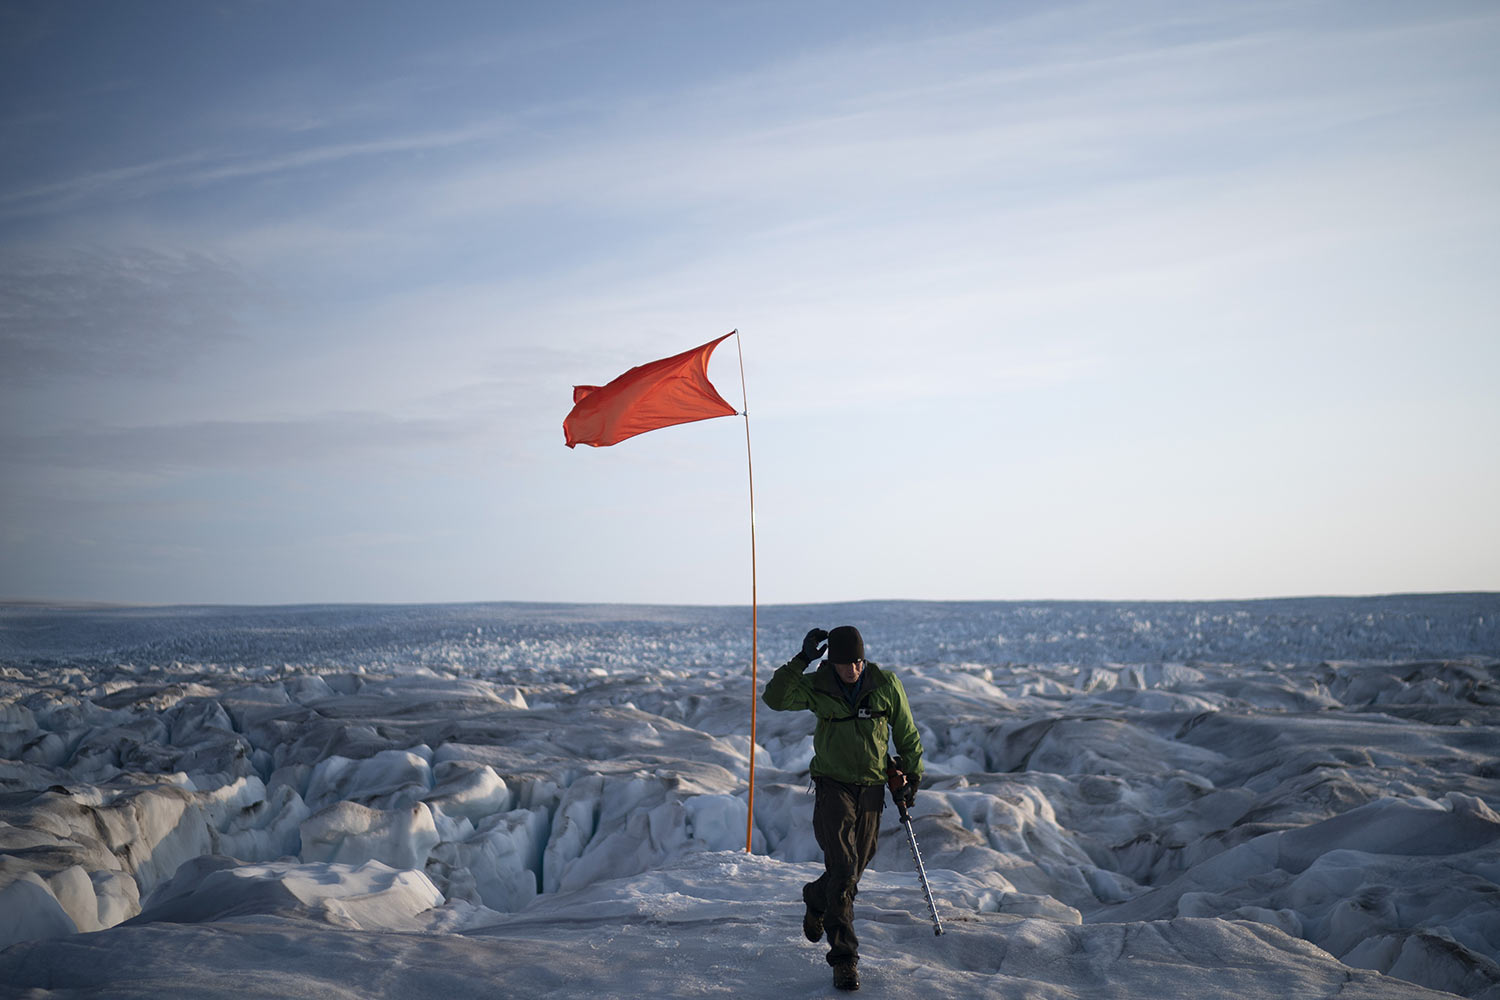 Brian Rougeux, NYU Field Safety Officer, walks after installing a flag to help identify a GPS position at the Helheim glacier, on Aug. 16, 2019, in Greenland. Summer 2019 is hitting the island hard with record-shattering heat and extreme melt. (AP Photo/Felipe Dana)